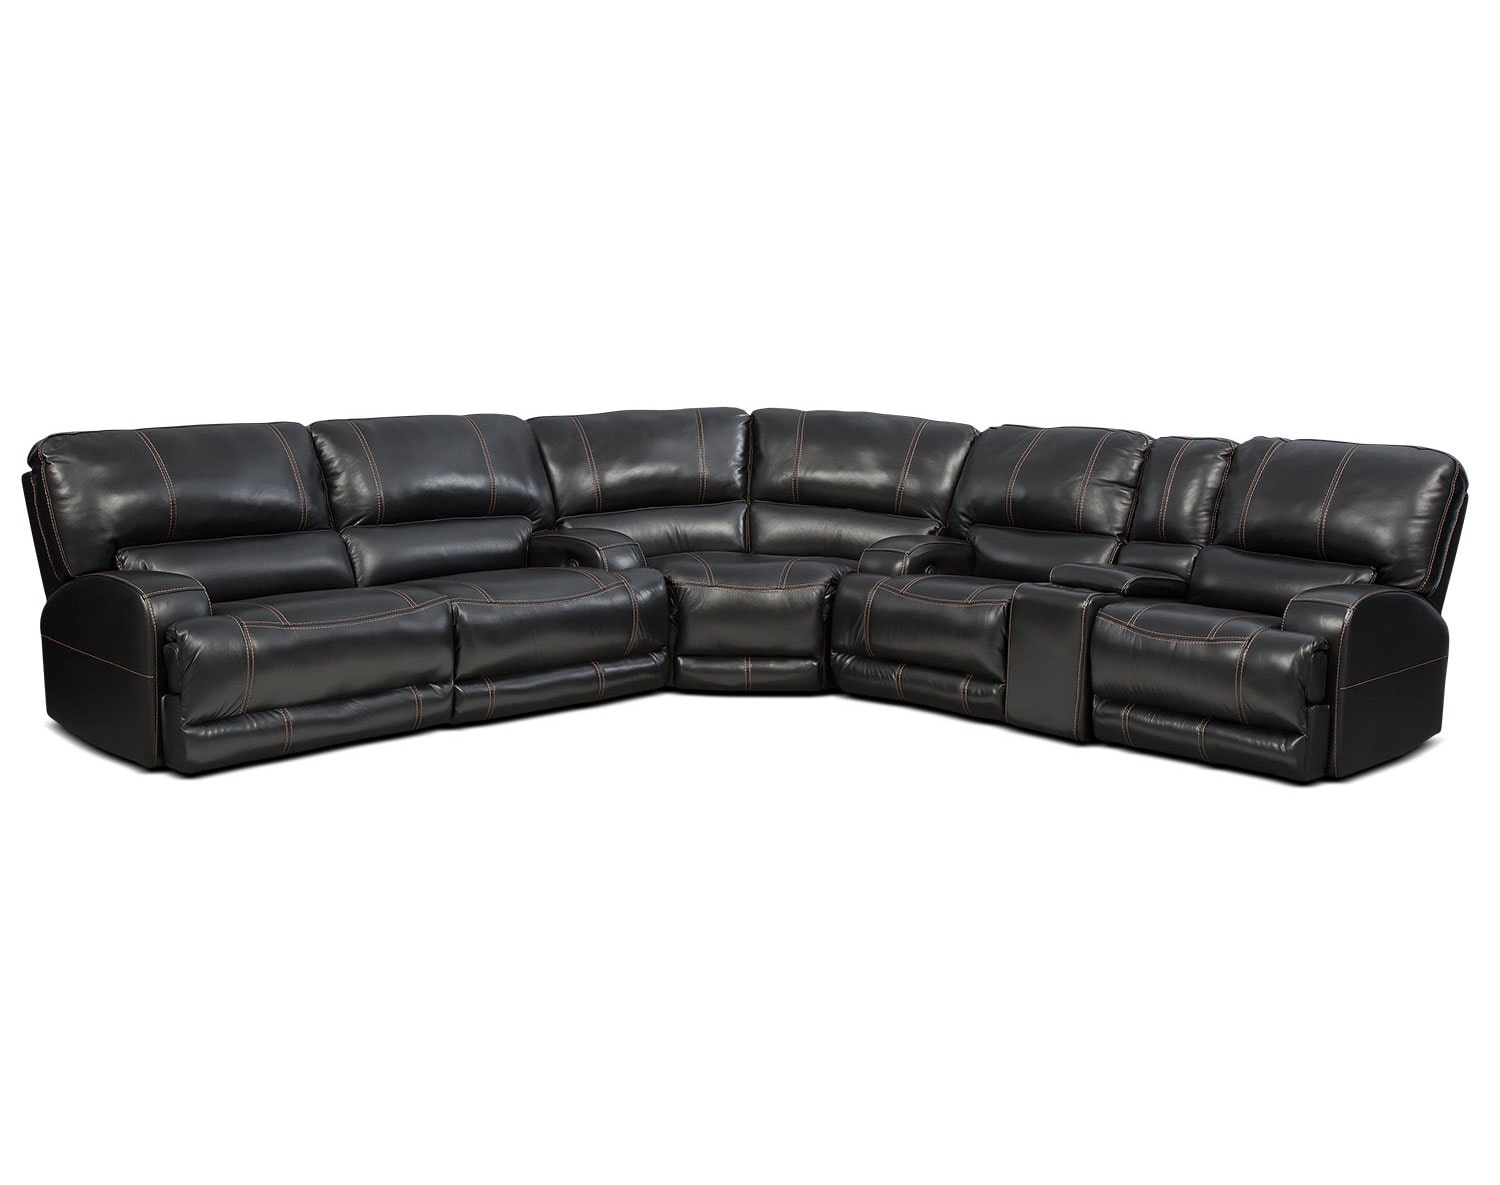 The Barton Black Sectional Collection